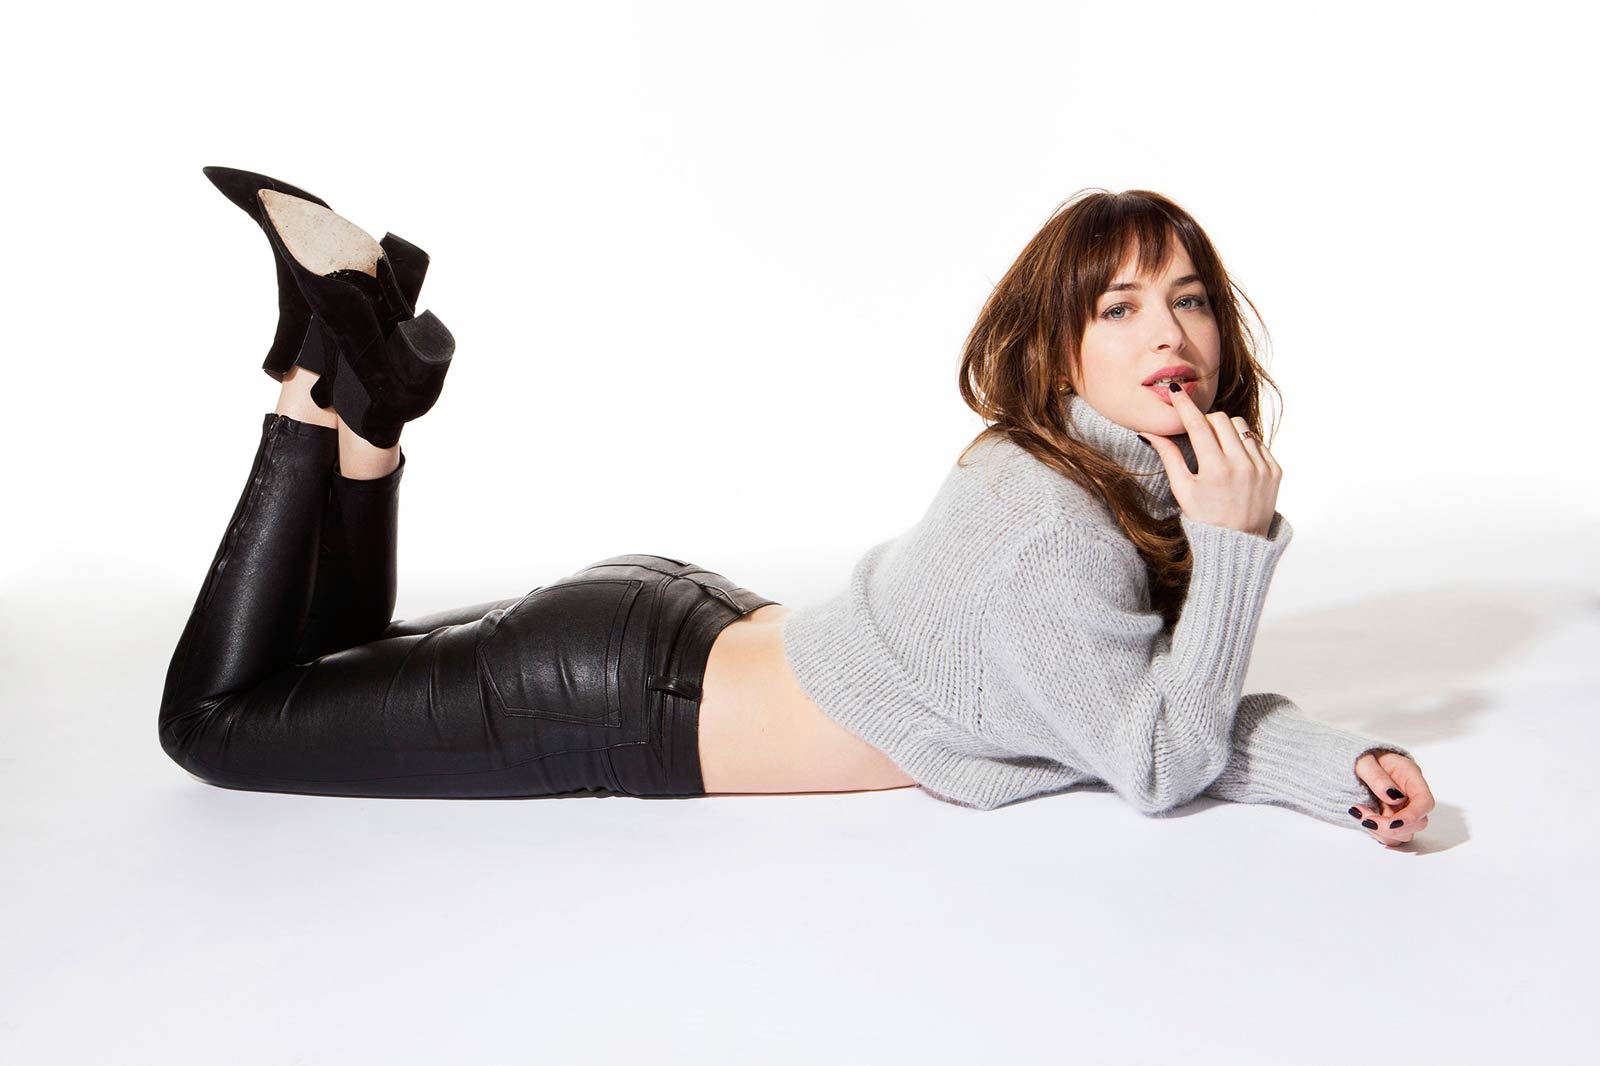 wpid-dakota-johnson-mary-ellen-matthews-photoshoot-3